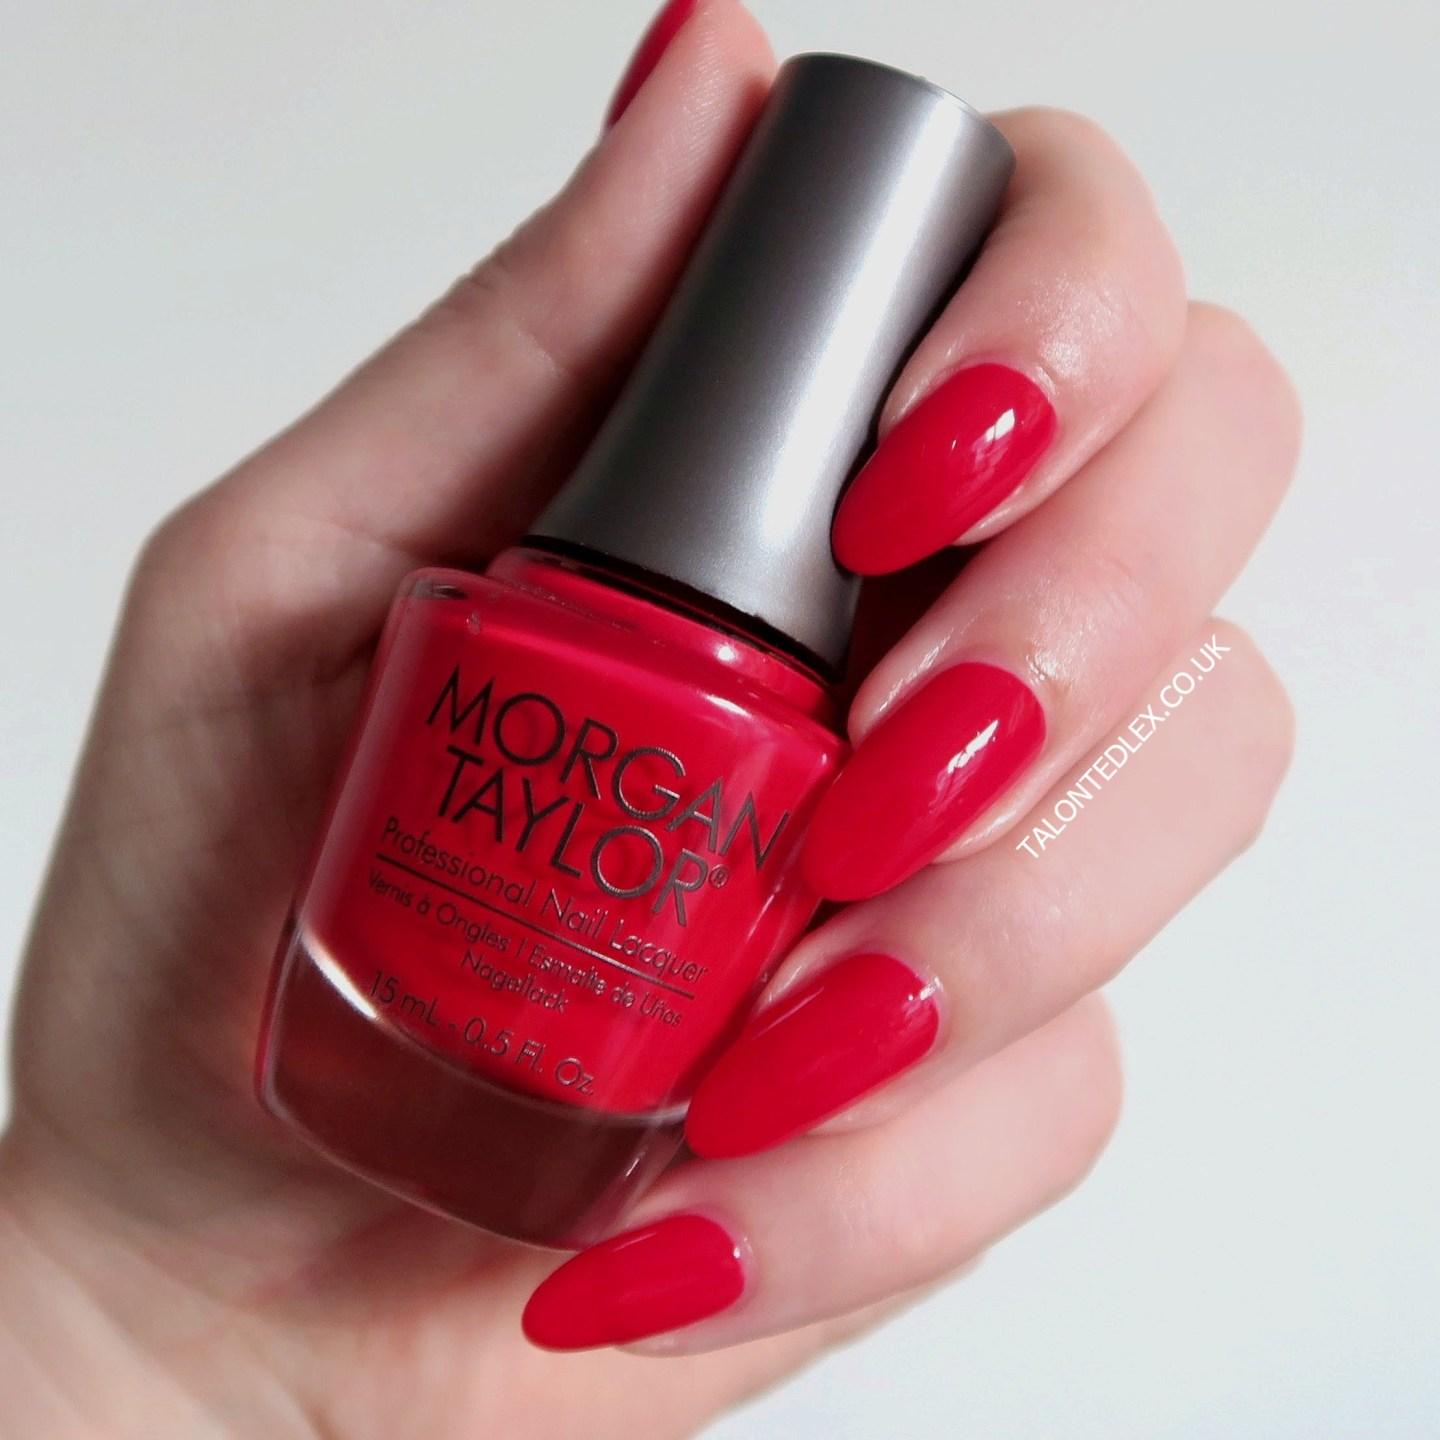 Repin and click to see the full Morgan Taylor Rocketman collection, including 'Put On Your Dancin' Shoes' - an orange-red creme polish. New Morgan Taylor nail polish range. #talontedlex #morgantaylor #rednails